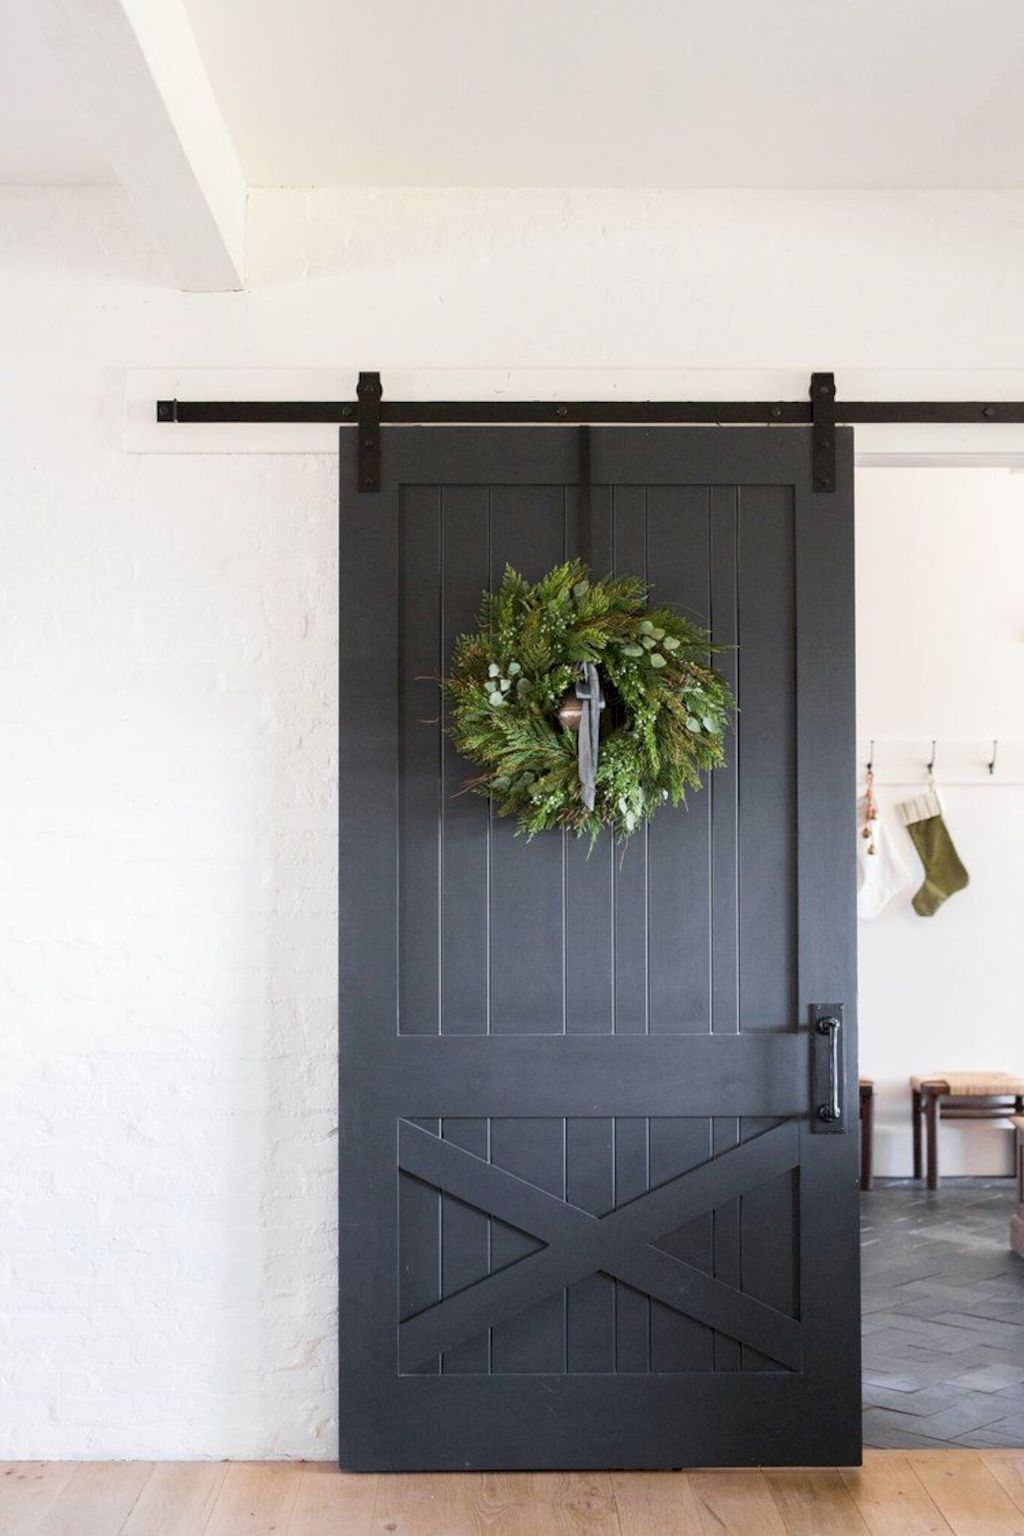 Barn Style Sliding Doors Applied As Bedroom Doors Showing A Rustic Accent In The Modern Country Homes Image 39 Shairoom Com Barn Style Sliding Doors Farmhouse Doors Sliding Barn Door Hardware